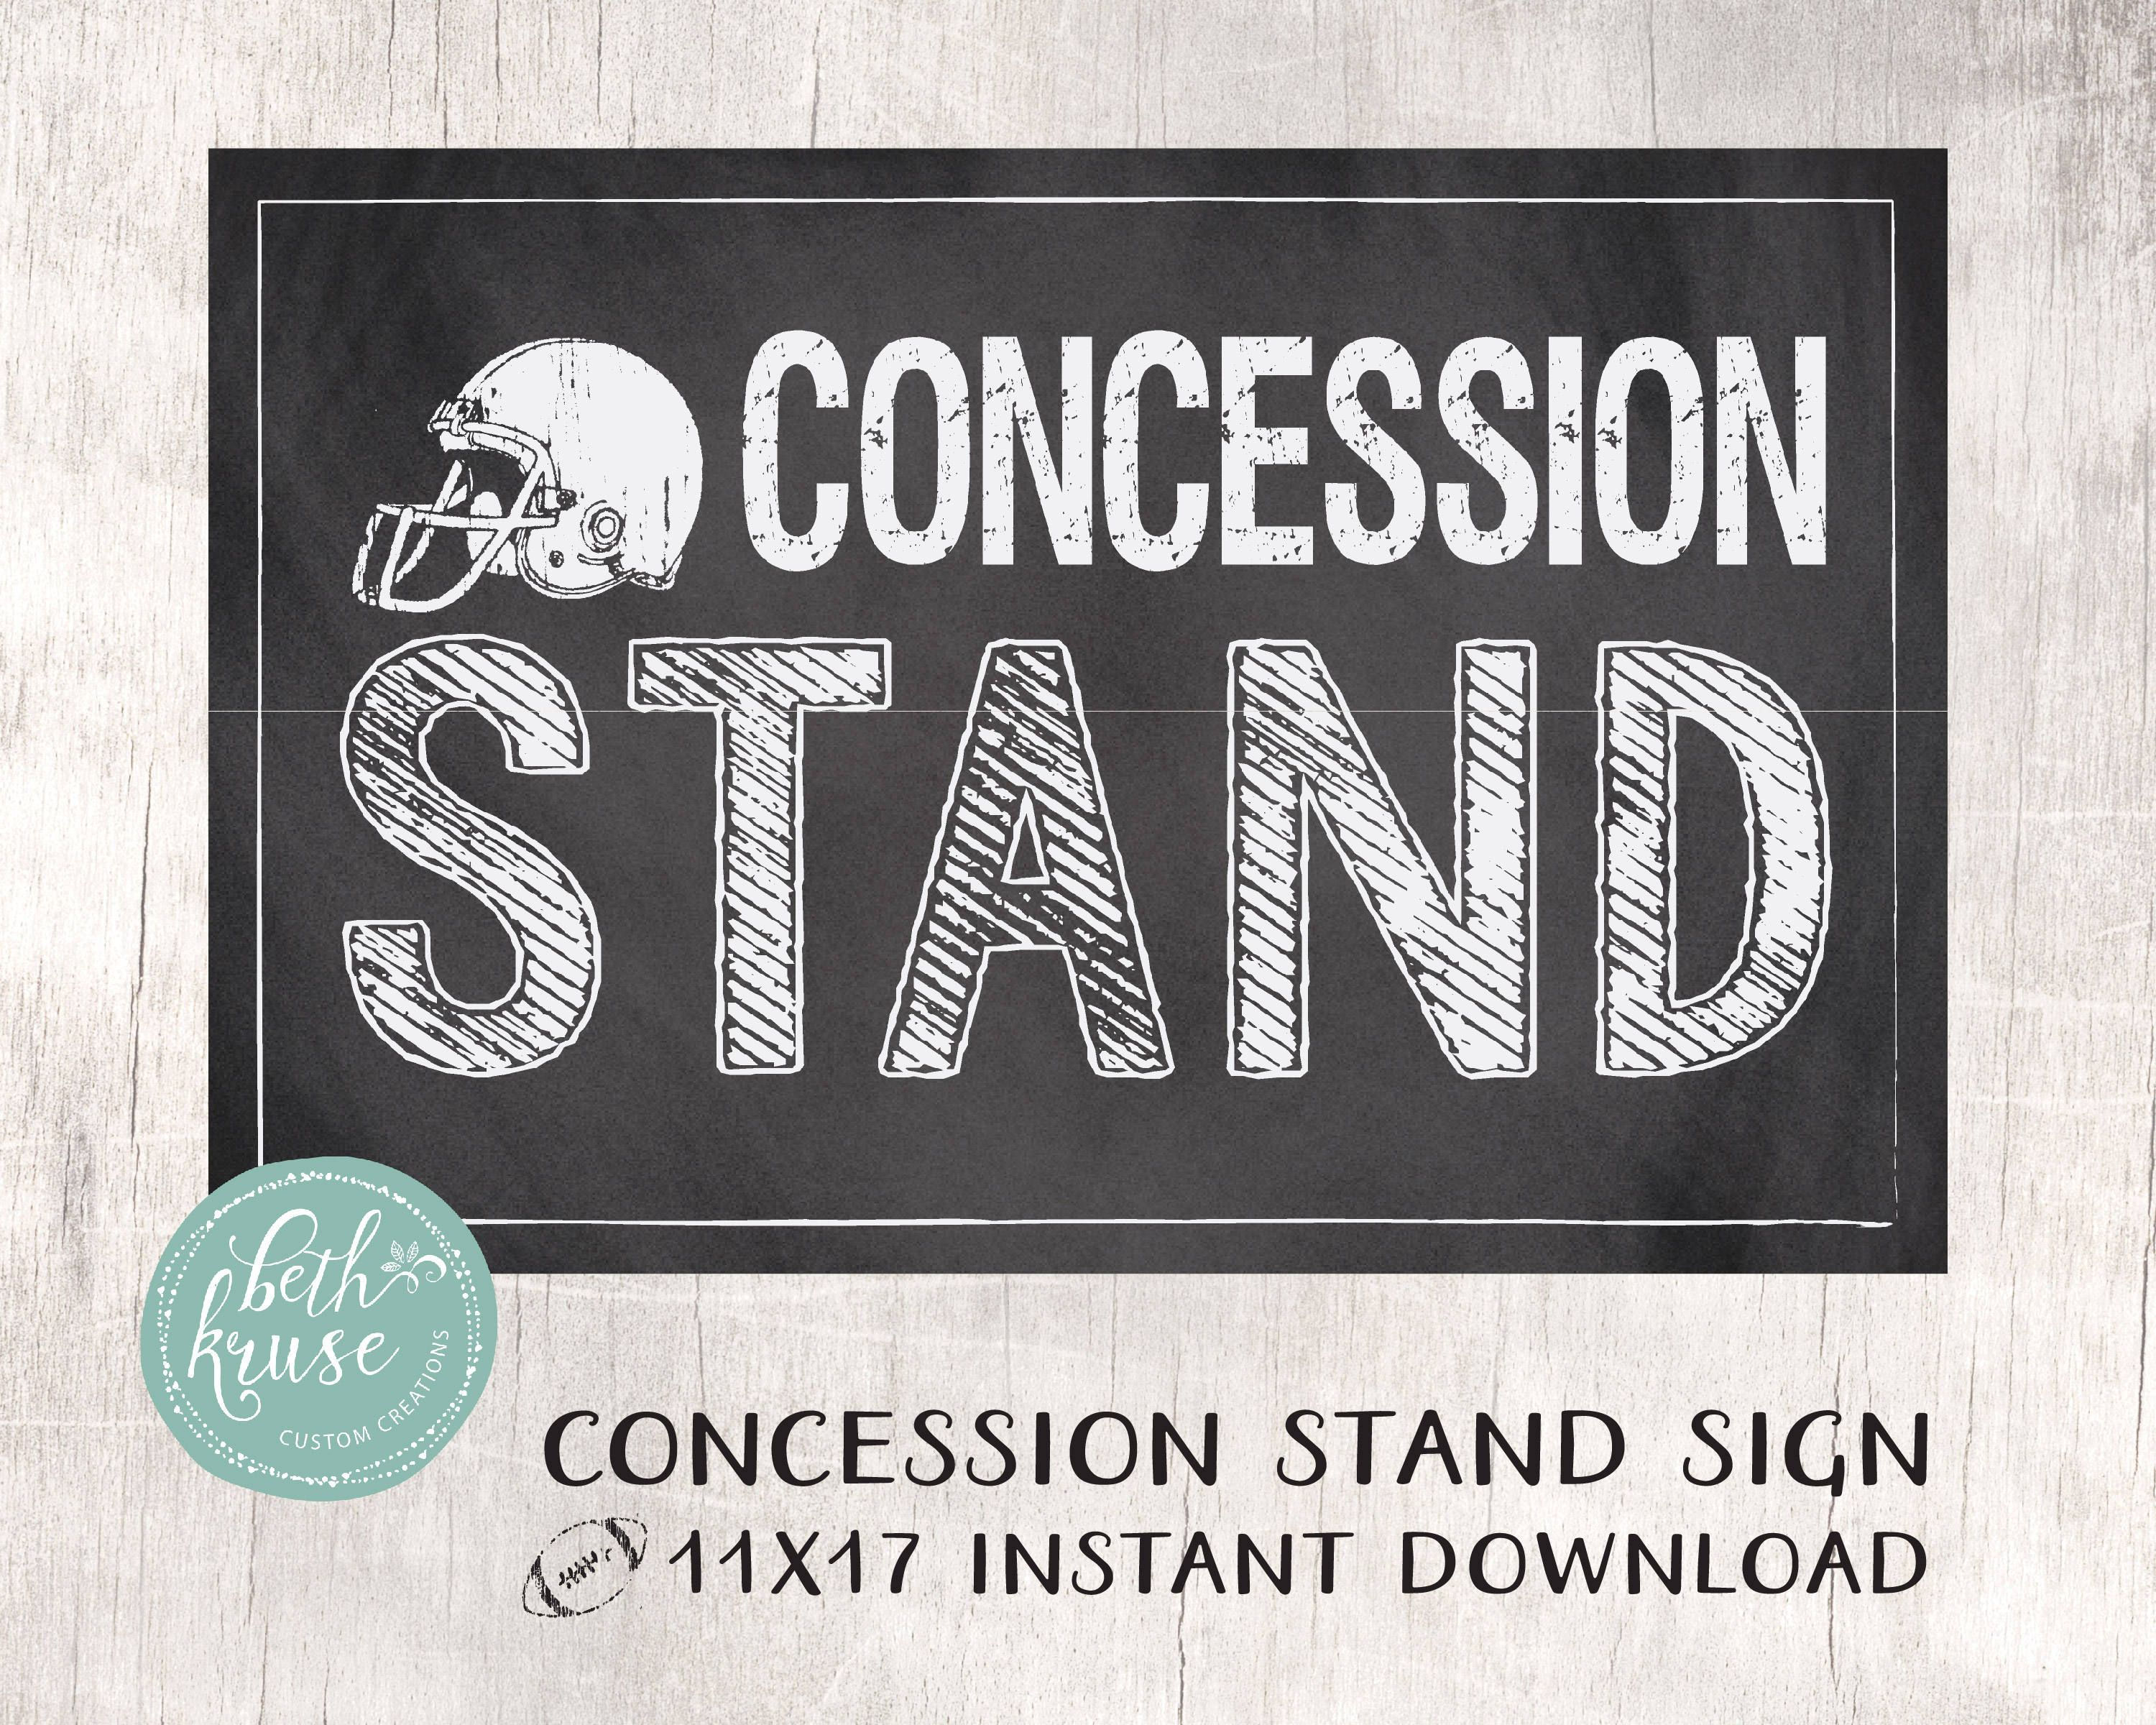 graphic about Concession Stand Signs Printable titled Concession Stand 11x17 Printable Indicator Instantaneous Down load